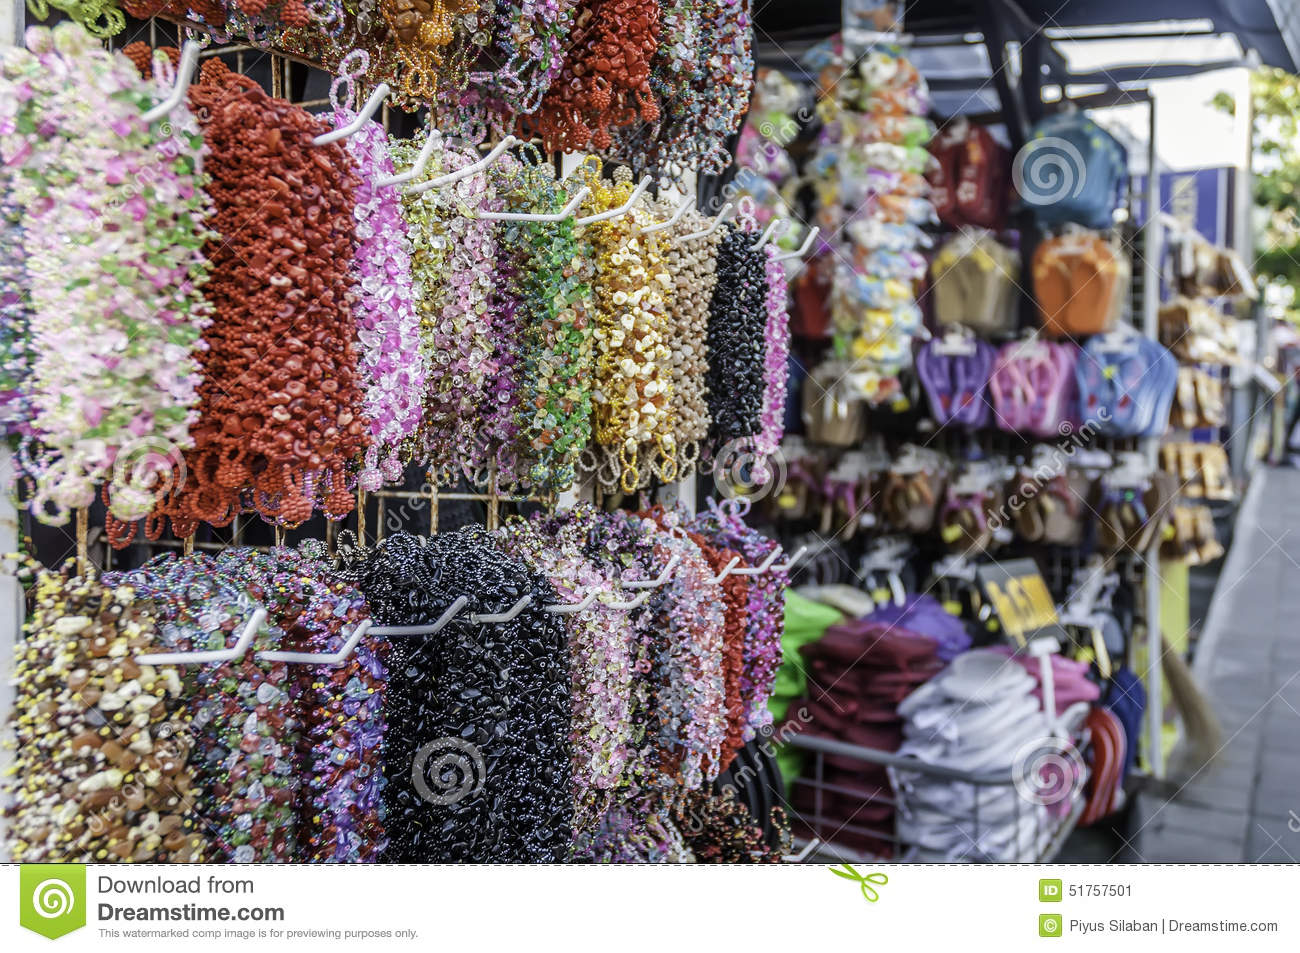 Tanah Lot Temple Traditional Art Market Editorial Photo Image Of Balinese Is A Famous Place In Bali Tabanan Village As Tourist Destination For Trading Old